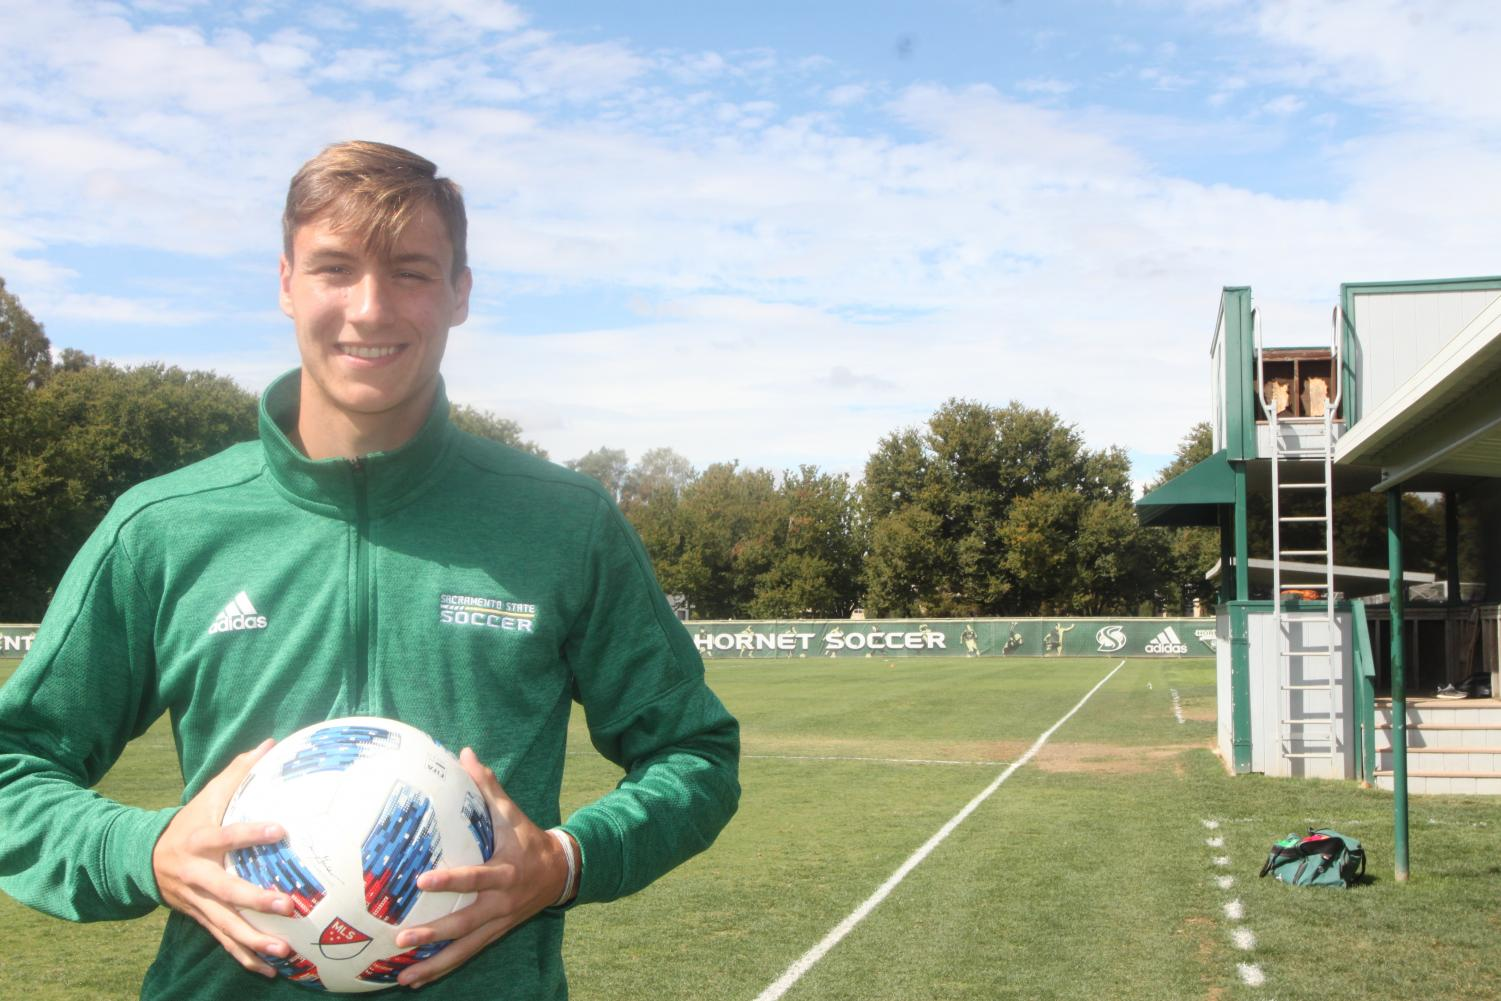 Sac State men's soccer forward Benji Kikanovic holding a soccer ball at Hornet Field Oct. 4. Kikanovic has five goals as a freshman this season.